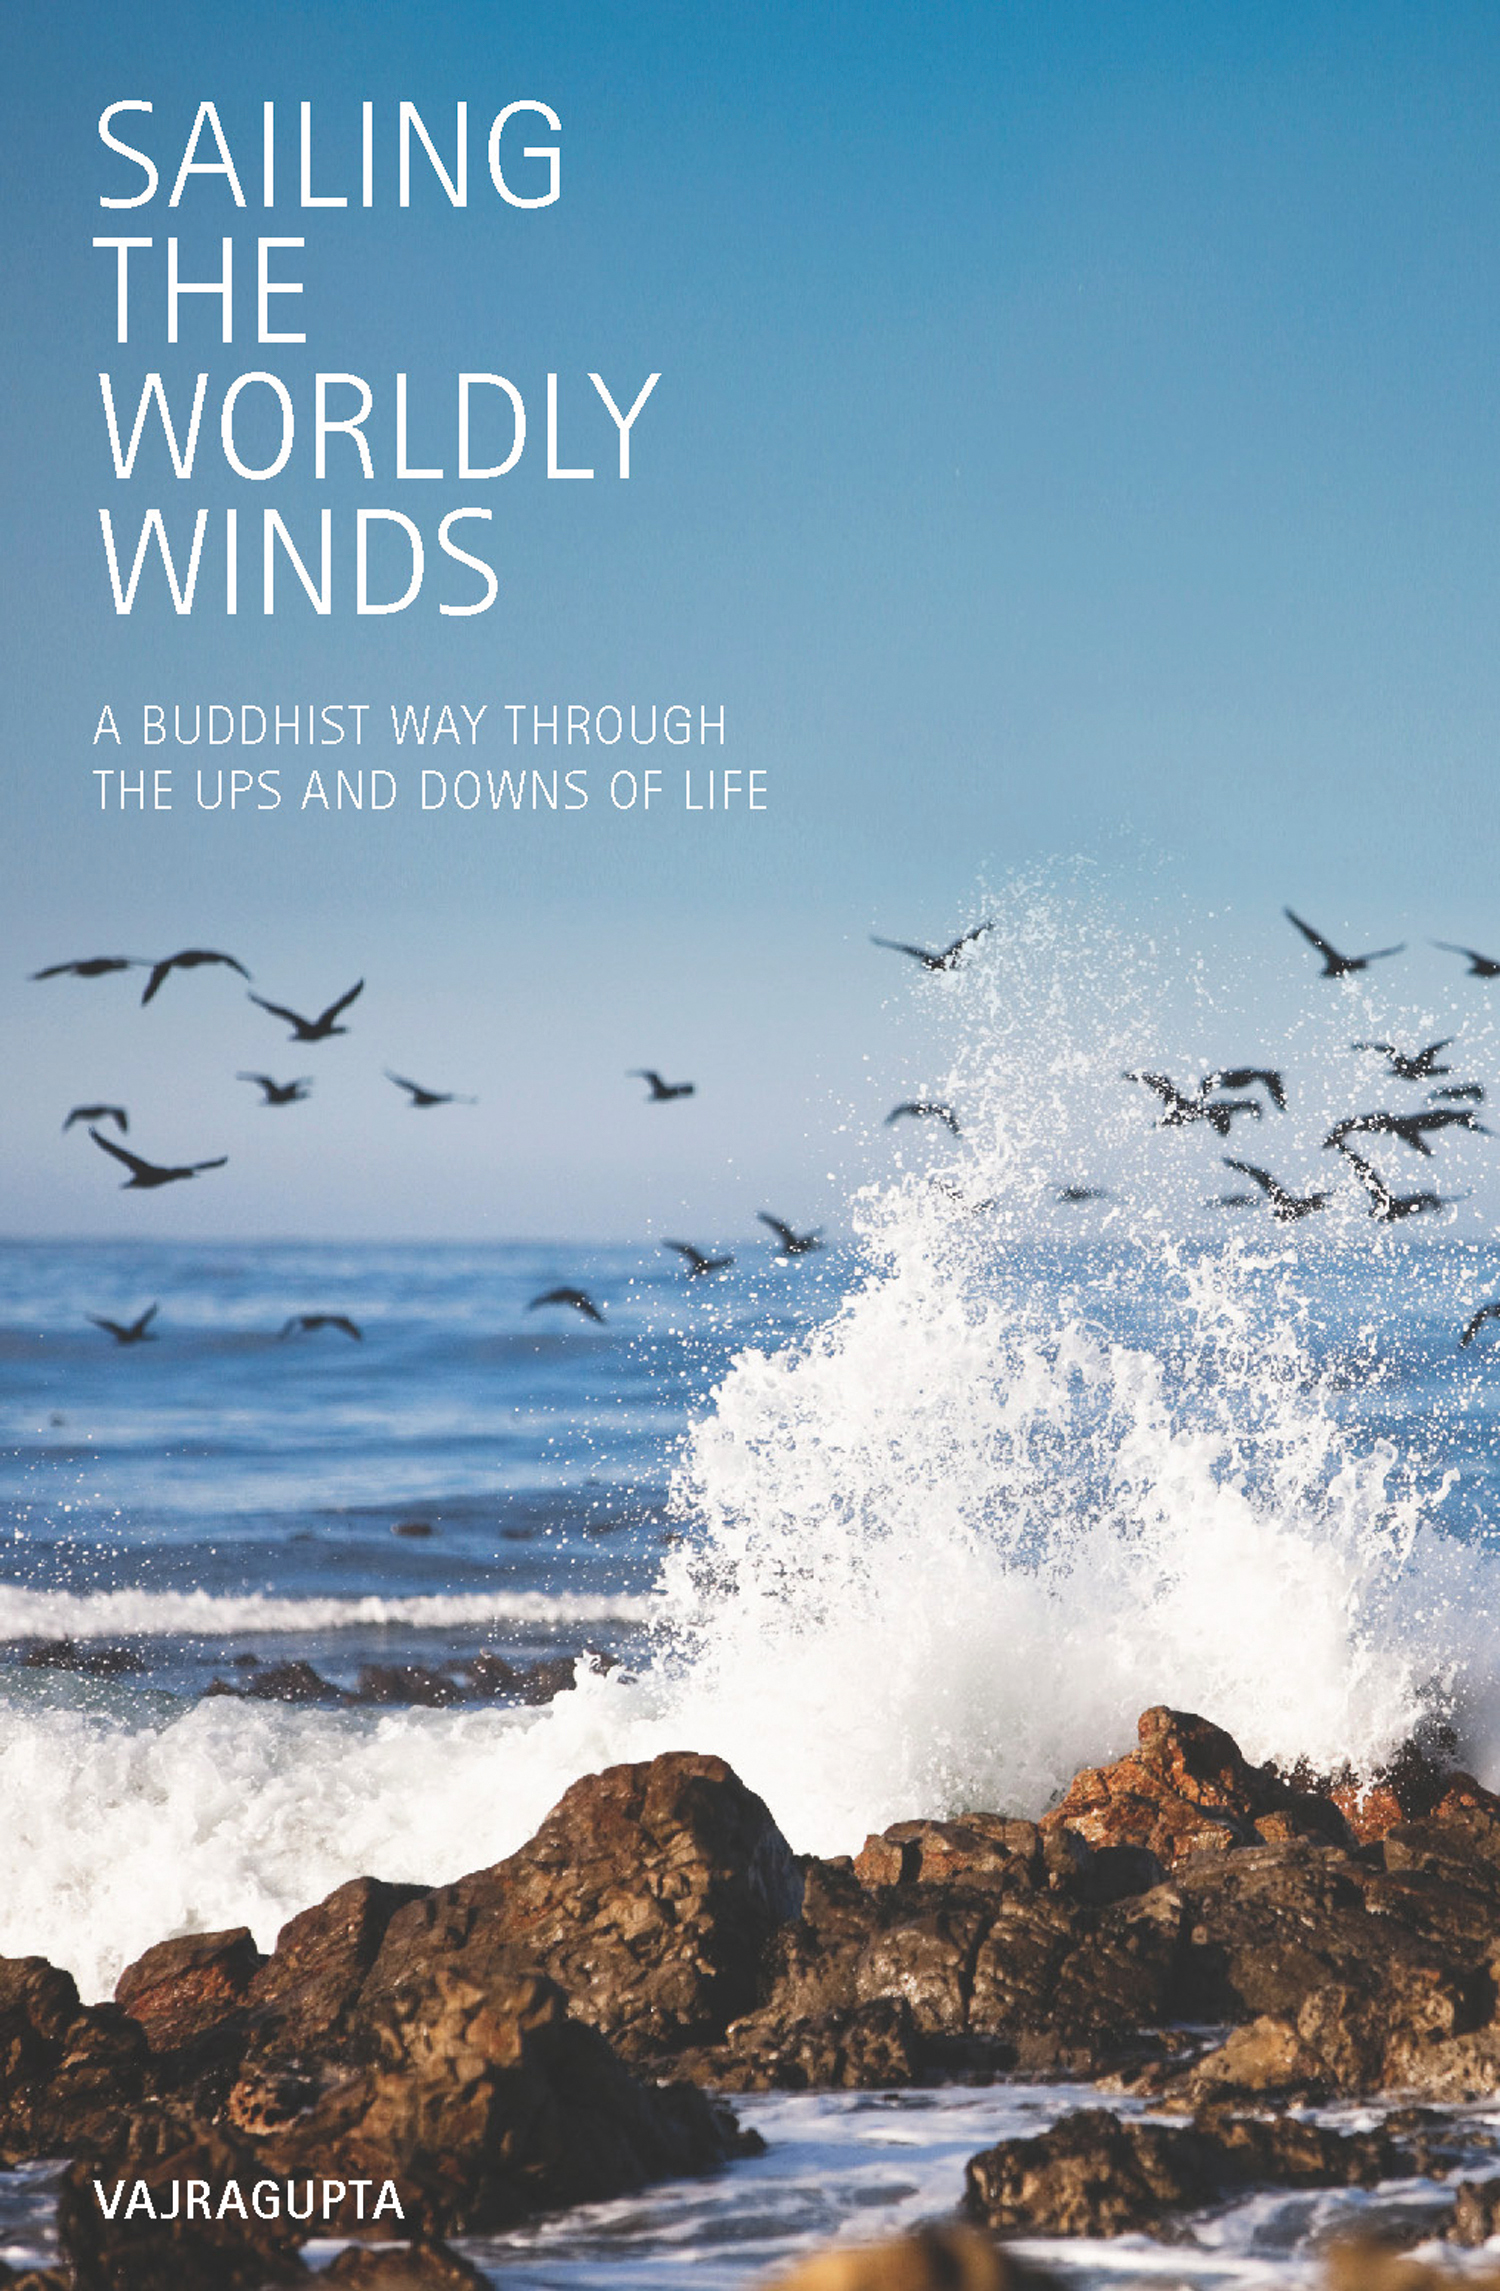 Sailing the Worldly Winds: A Buddhist Way Through the Ups and Downs of Life By: Vajrapgupta